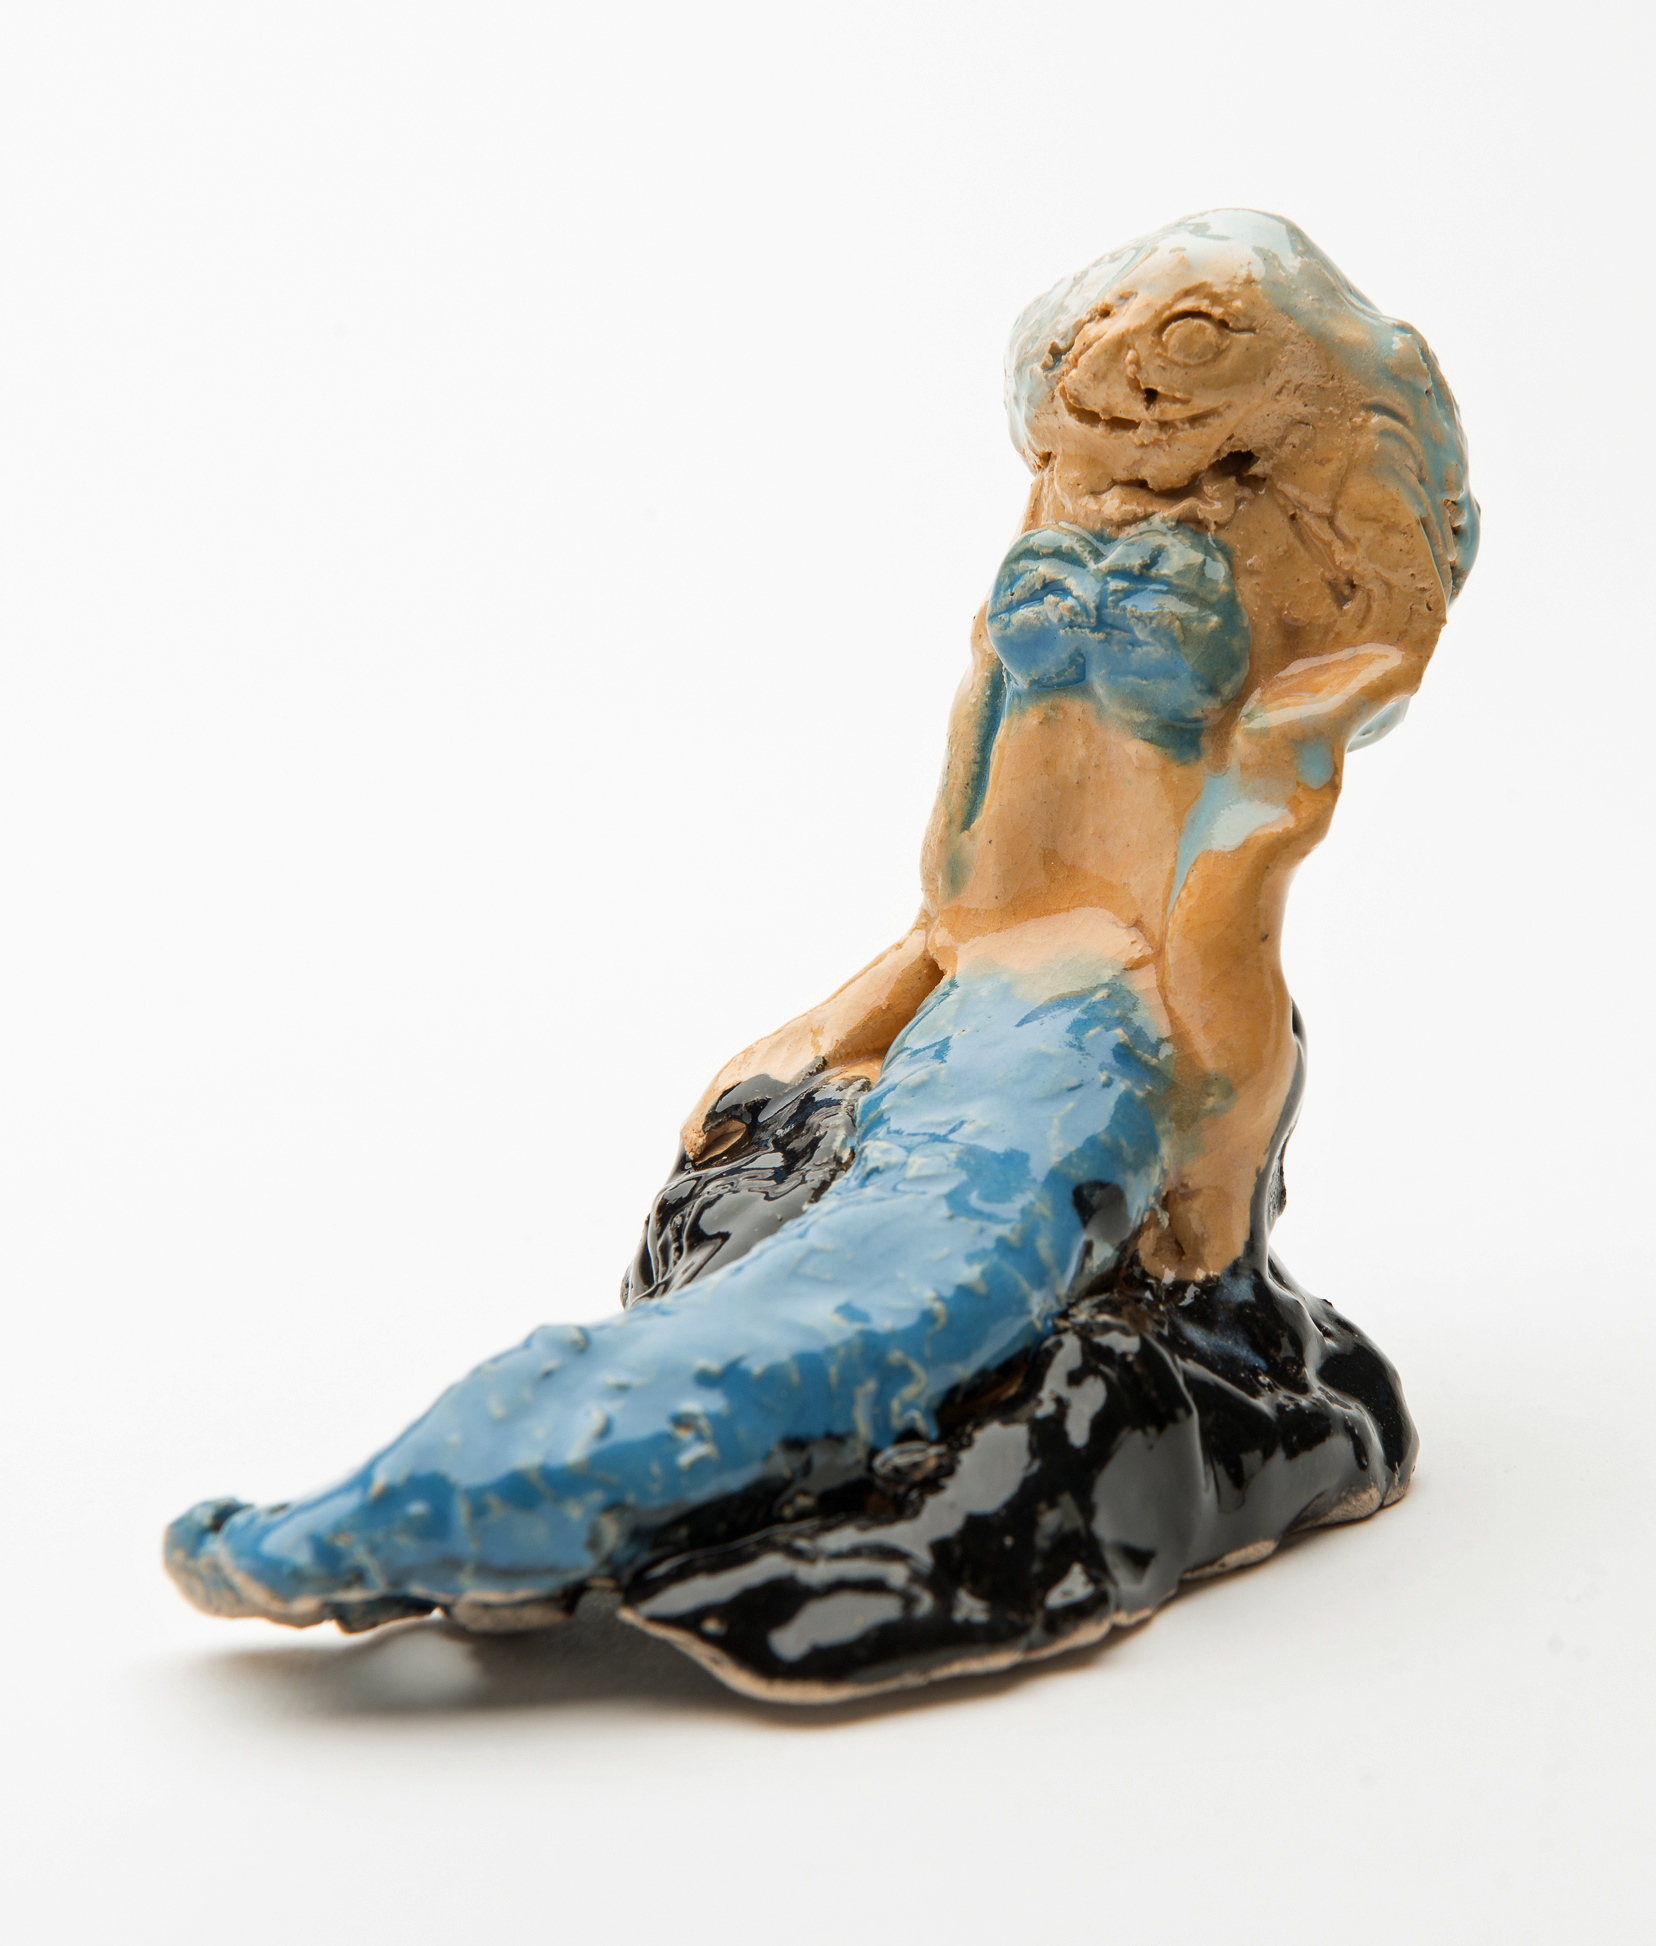 4 Ceramic Mermaid - Kids Like Clay.jpg